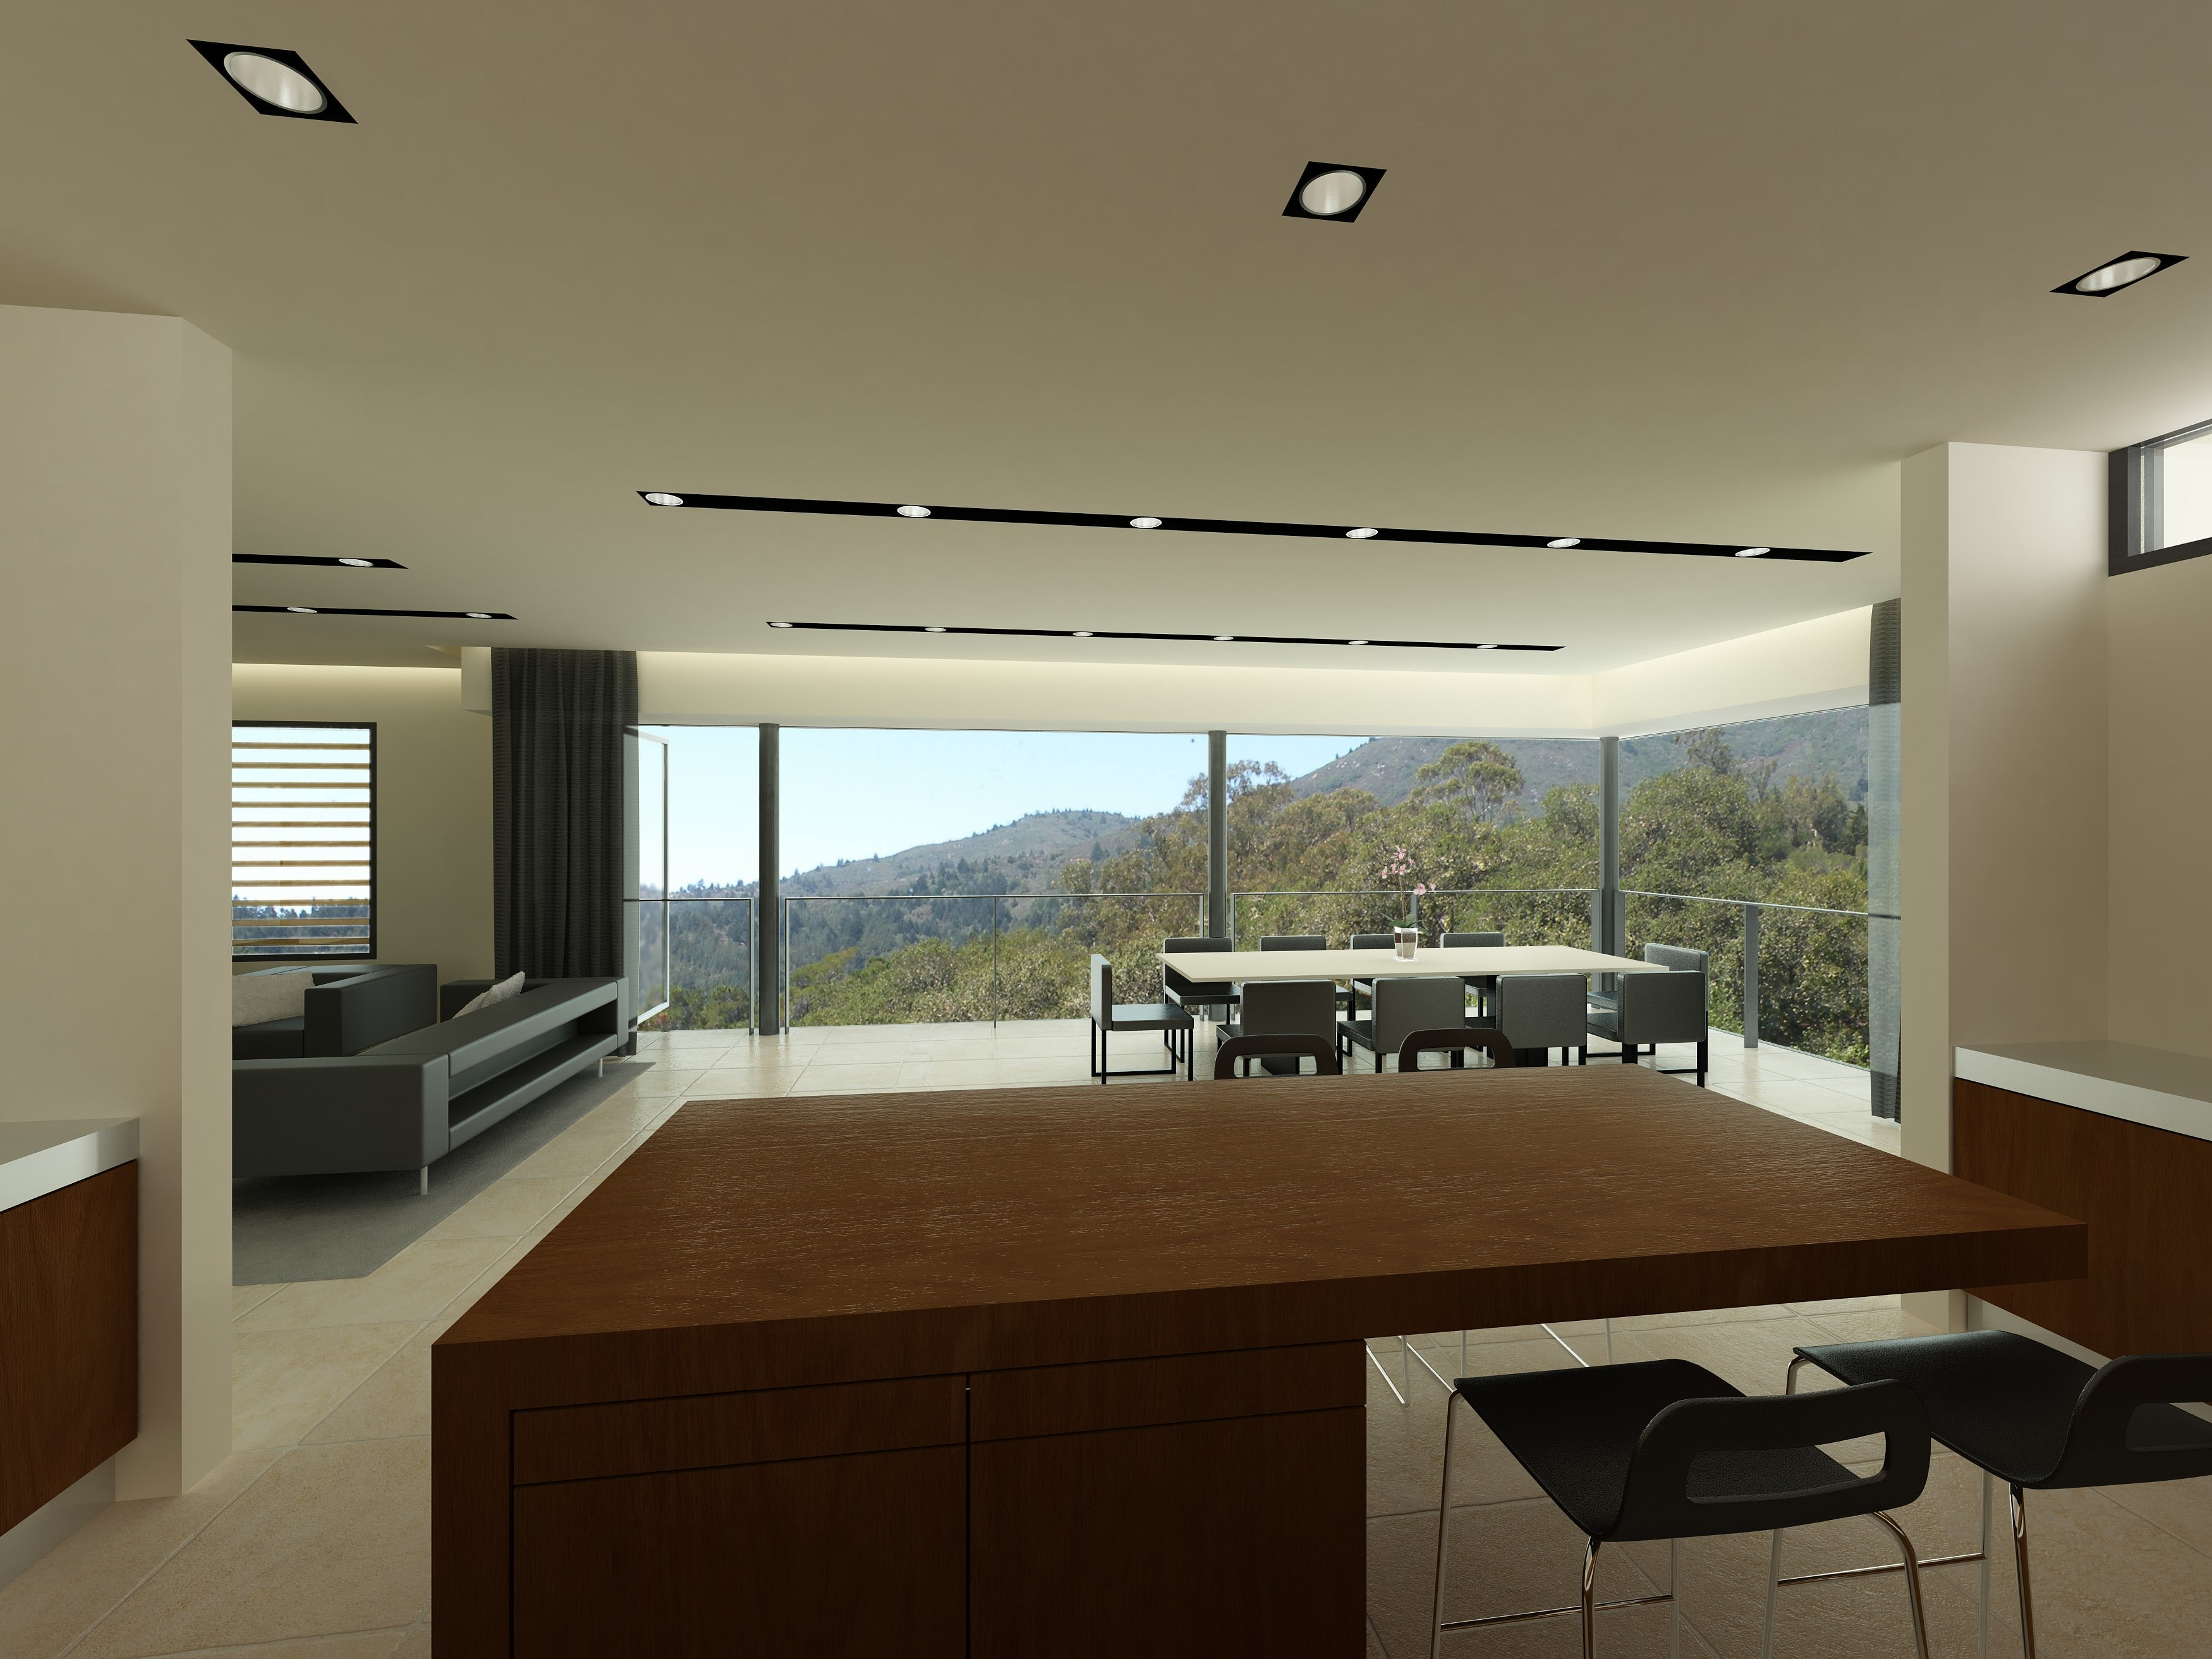 Mountain Residence by Quezada Architecture (Fred Quezada, Cecilia Quezada, Ed Tingley)